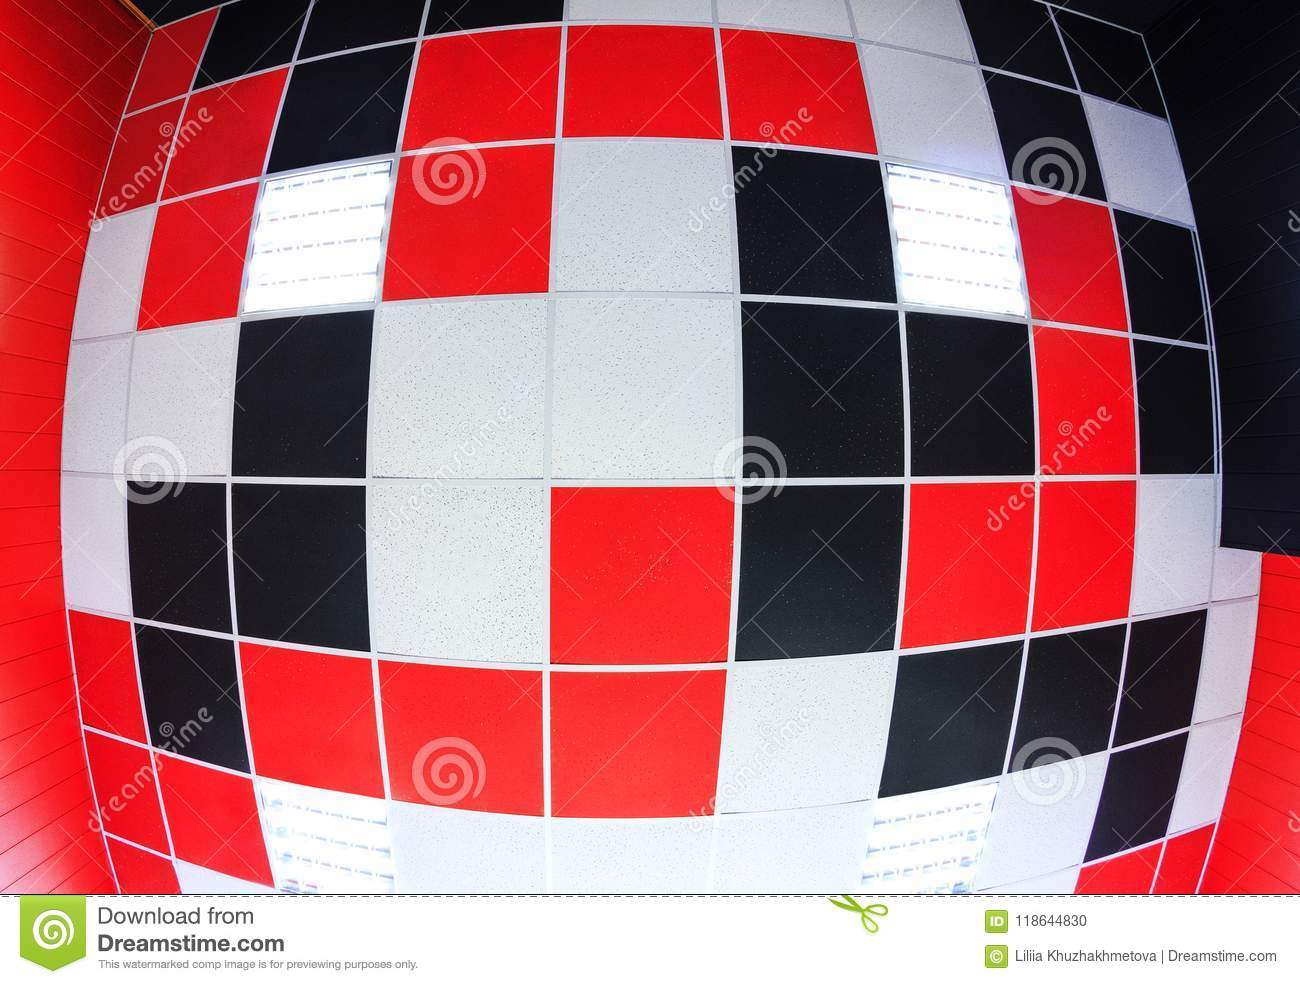 Ceiling Background With Color Tiles Stock Photo - Image of abstract ...